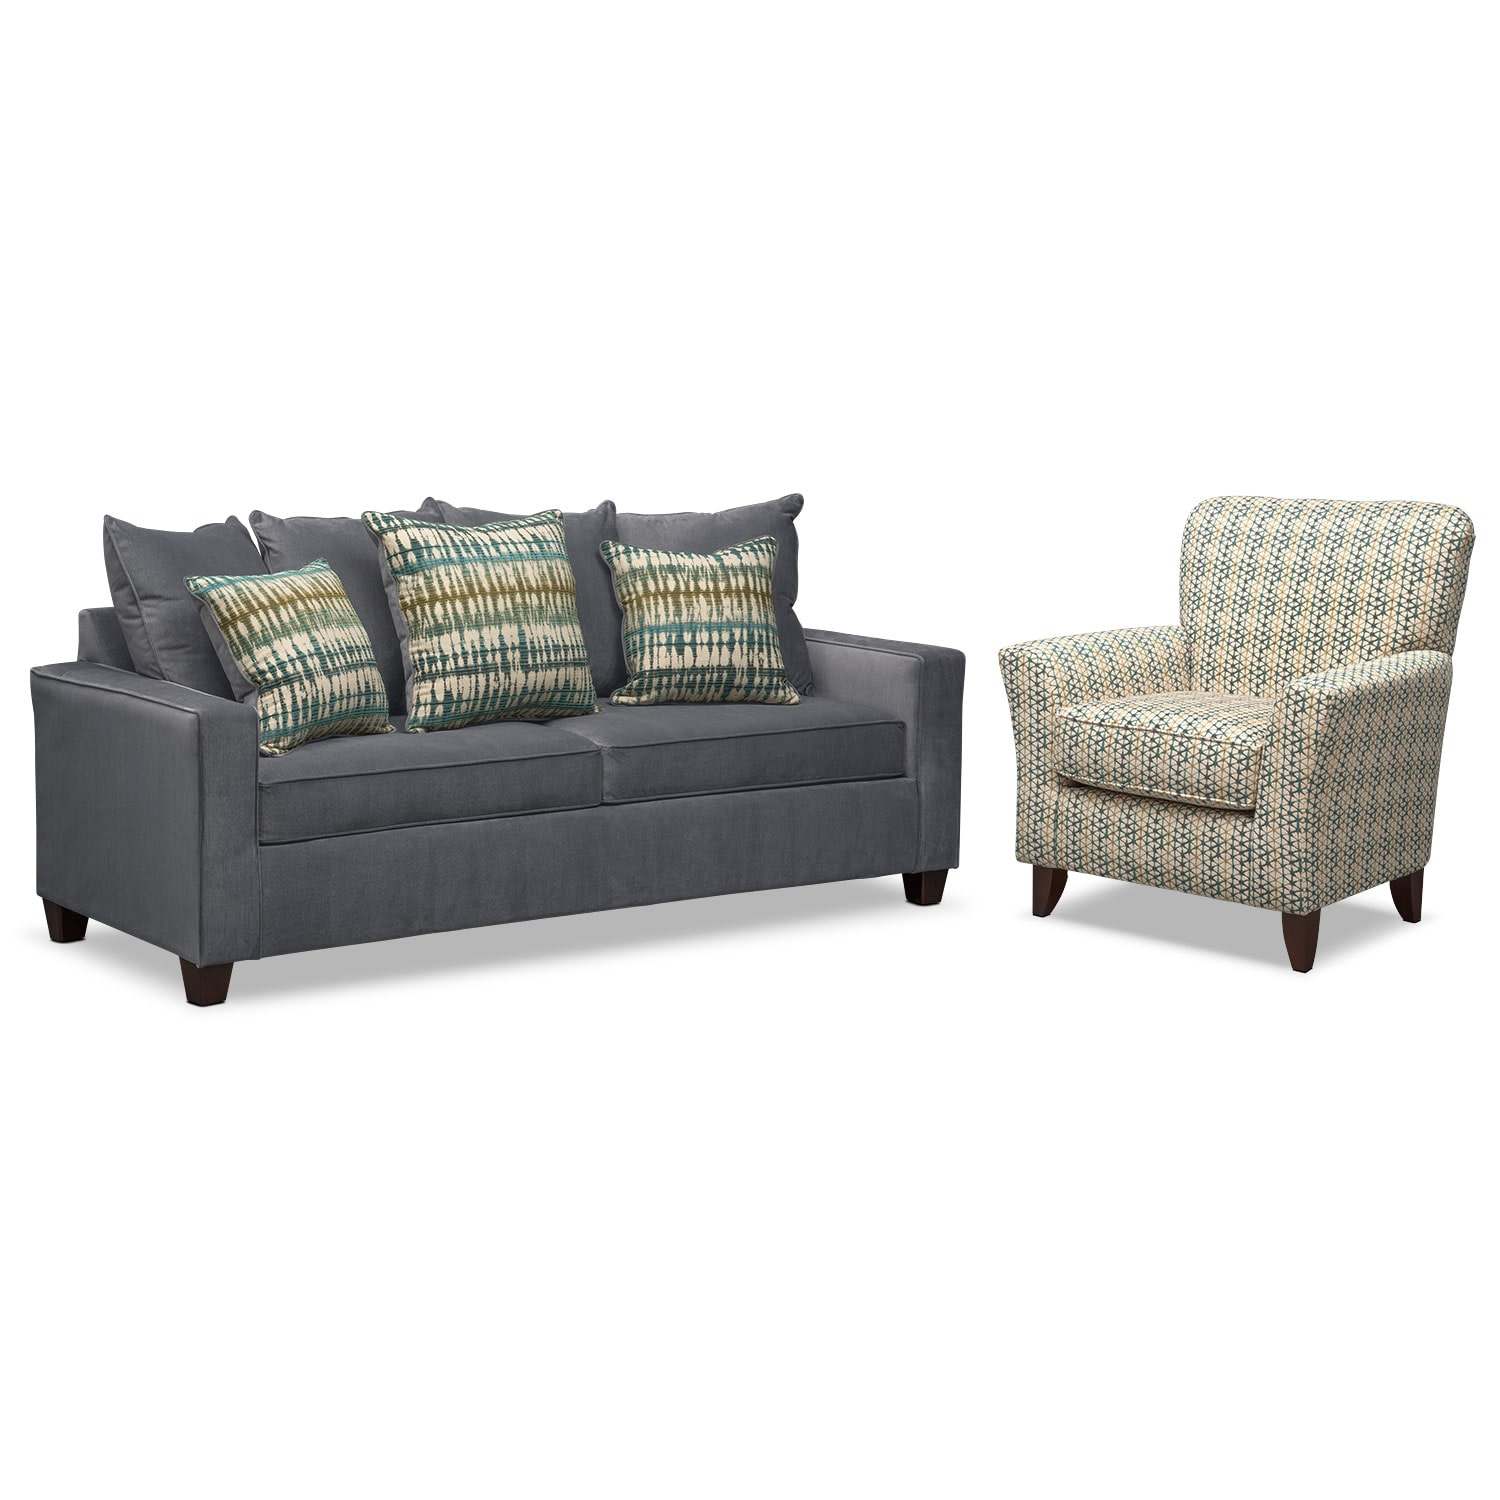 Bryden Sofa And Accent Chair Set Slate Value City Furniture